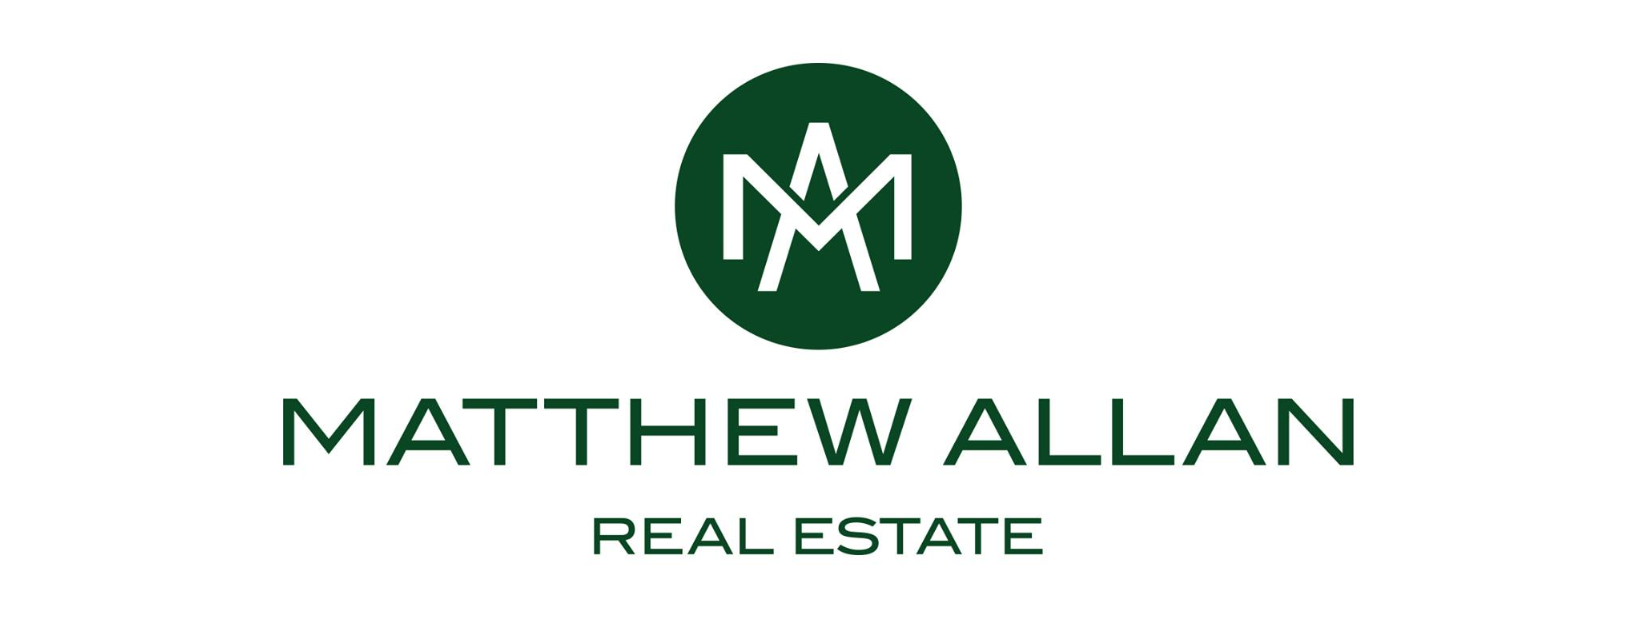 Matthew Allan Savannah Real Estate - real estate cover photos - tips from the pros